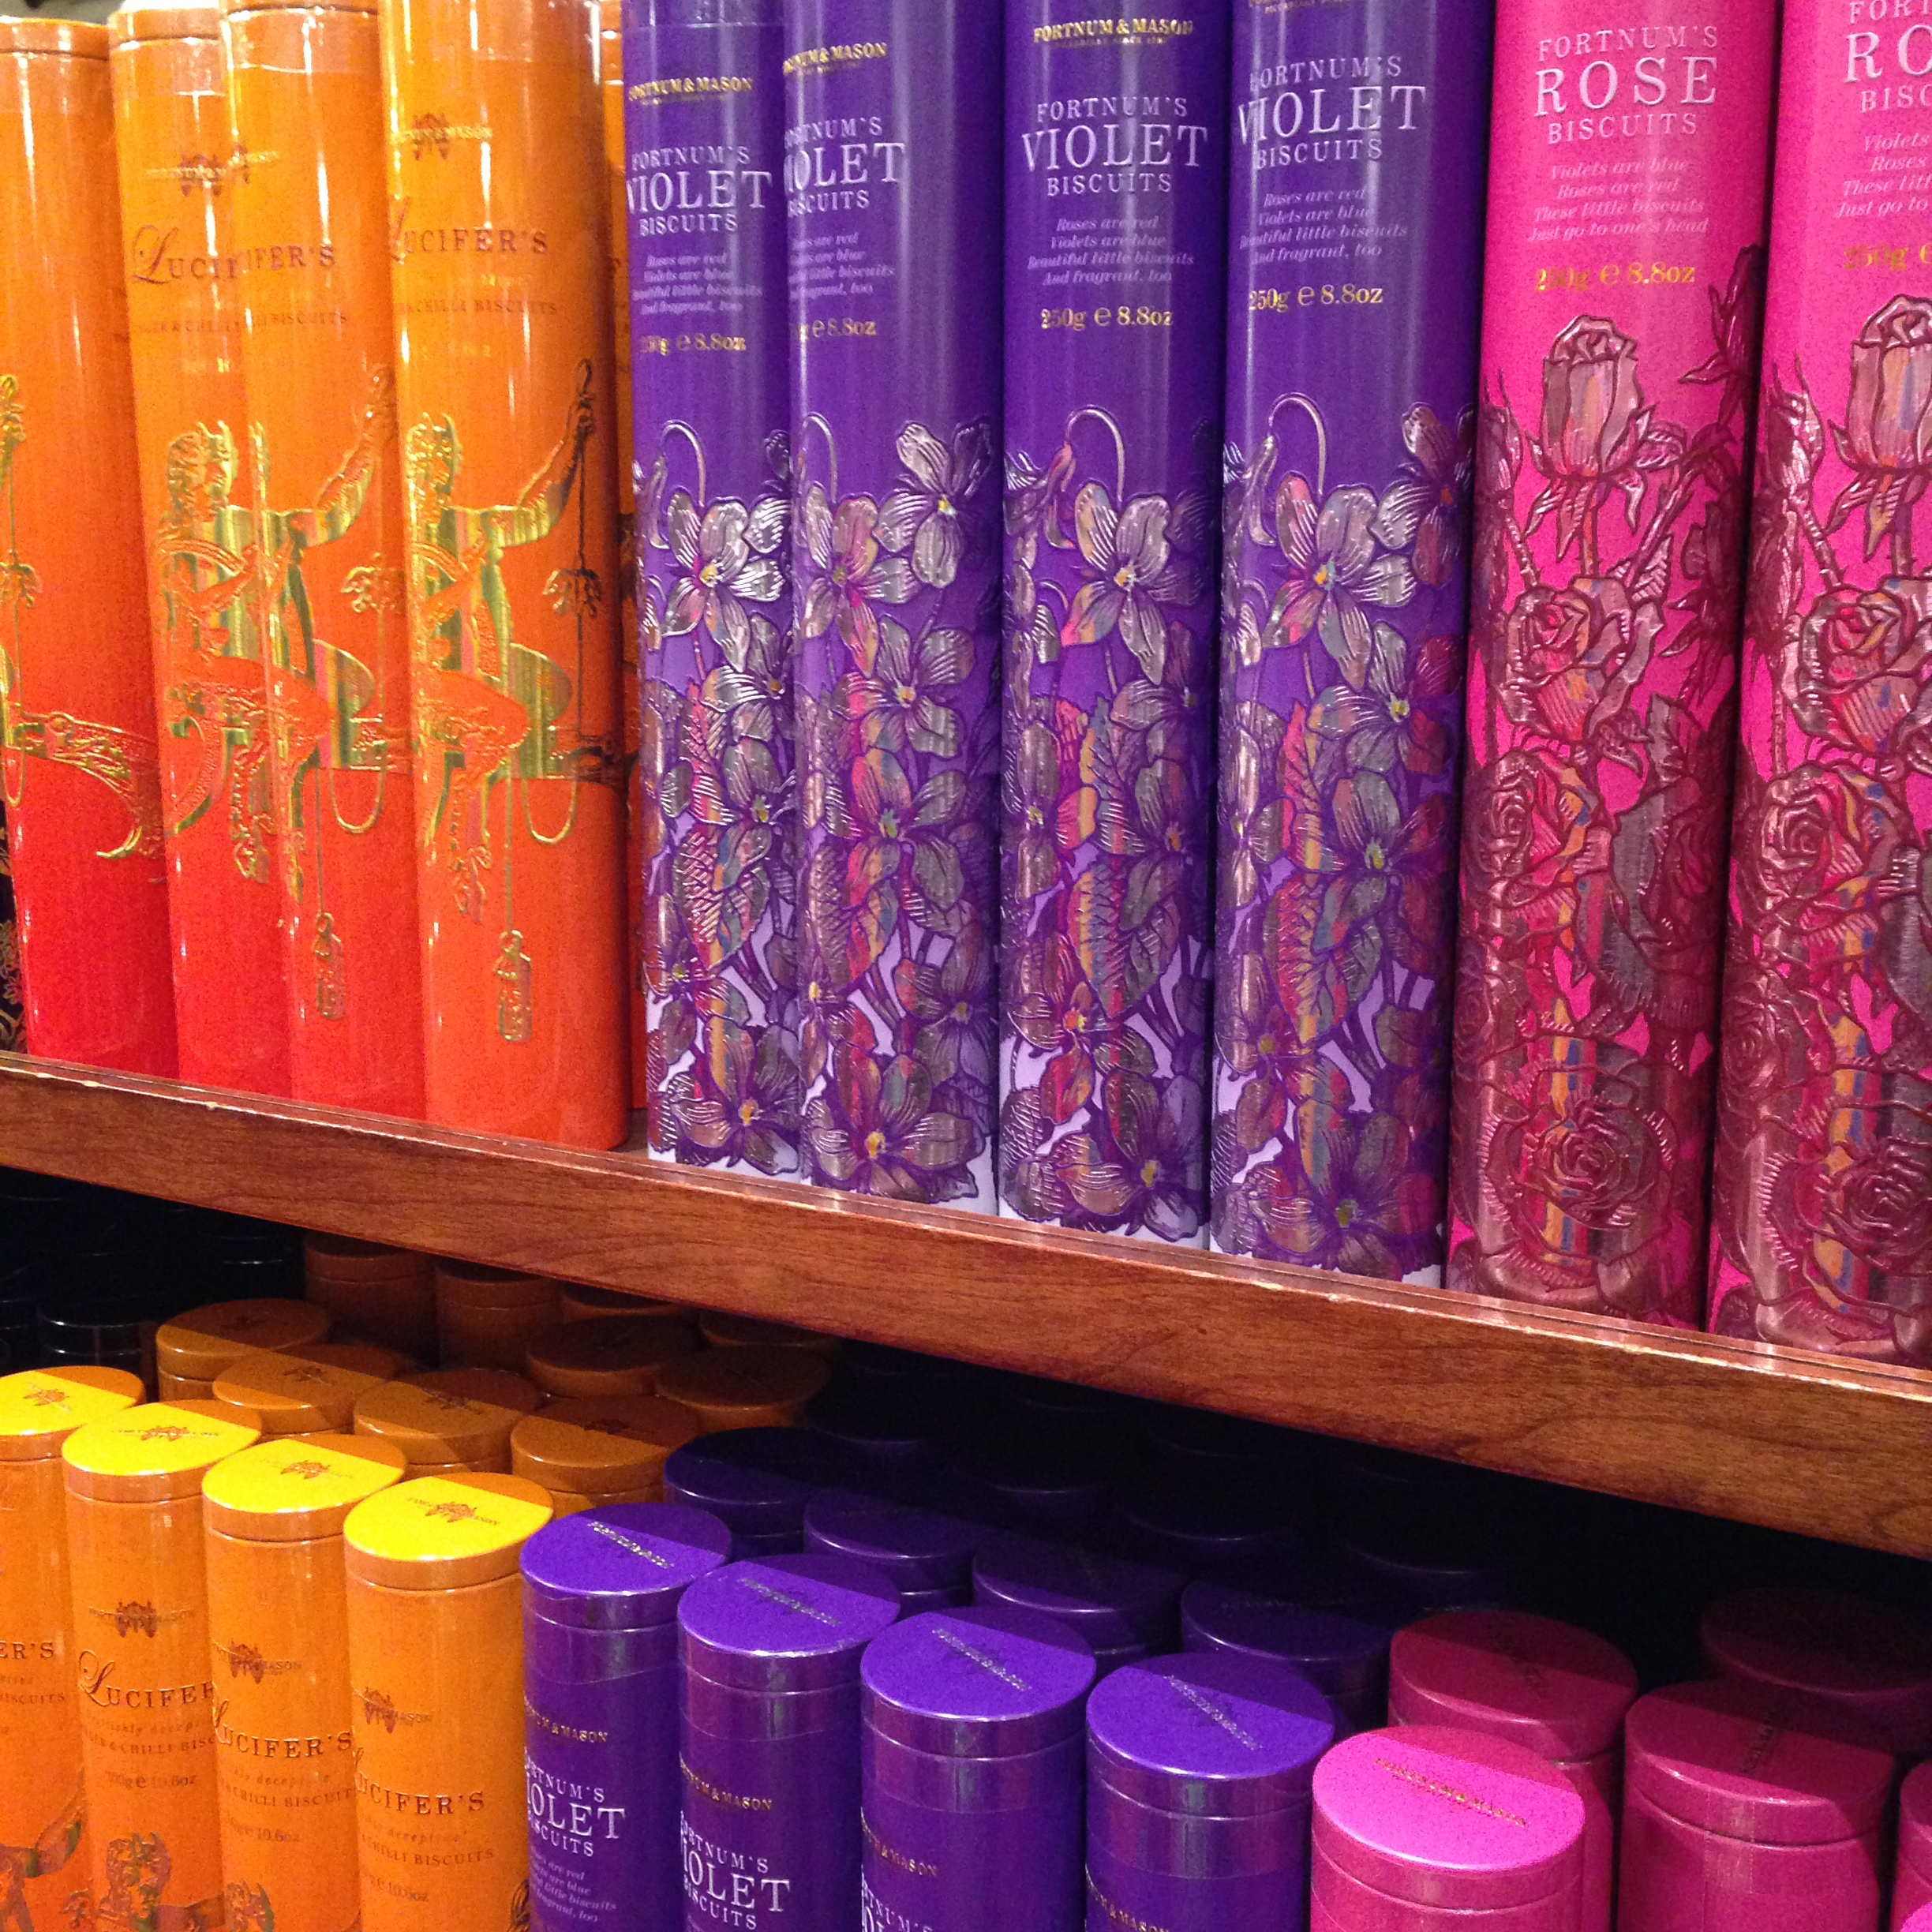 Display of Fortnum & Mason's wonderful biscuits in their London shop.